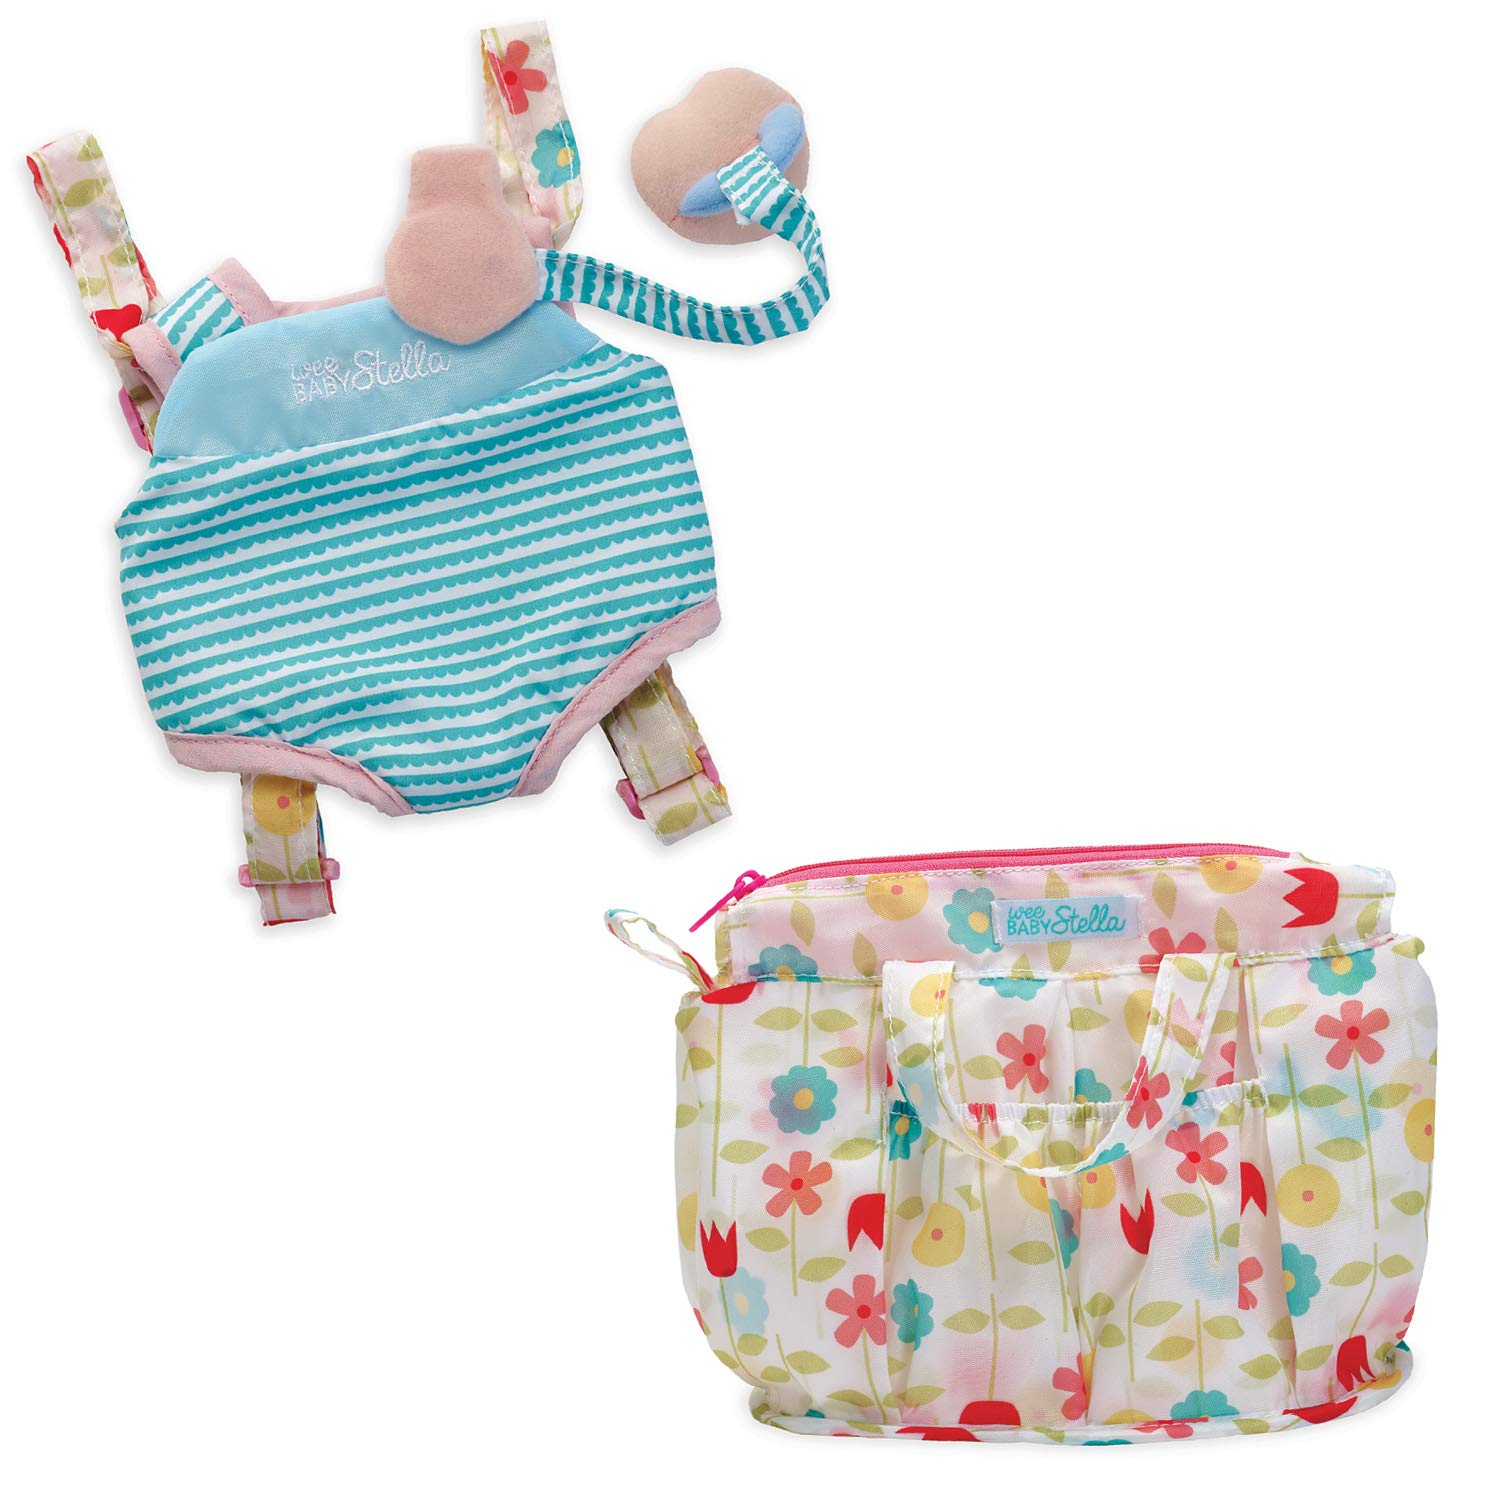 Manhattan Toy Wee Baby Stella Travel Time Carrier Set and Delightful Diaper Bag Baby Doll Accessories by Manhattan Toy